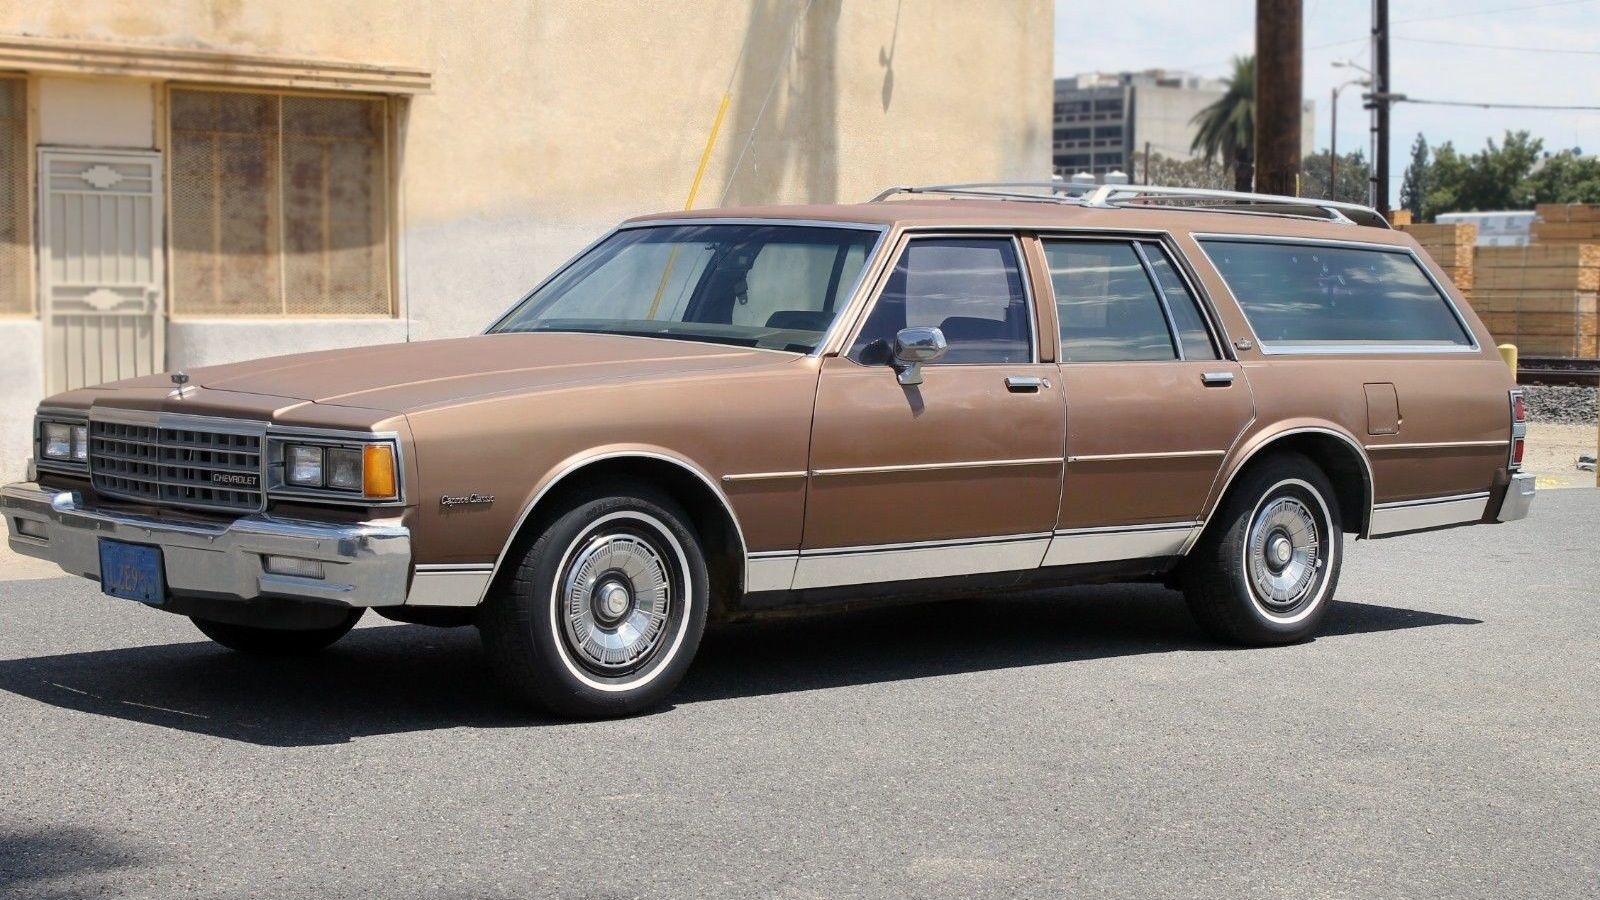 Barn Find 1985 Chevrolet Caprice Wagon Chevrolet Caprice